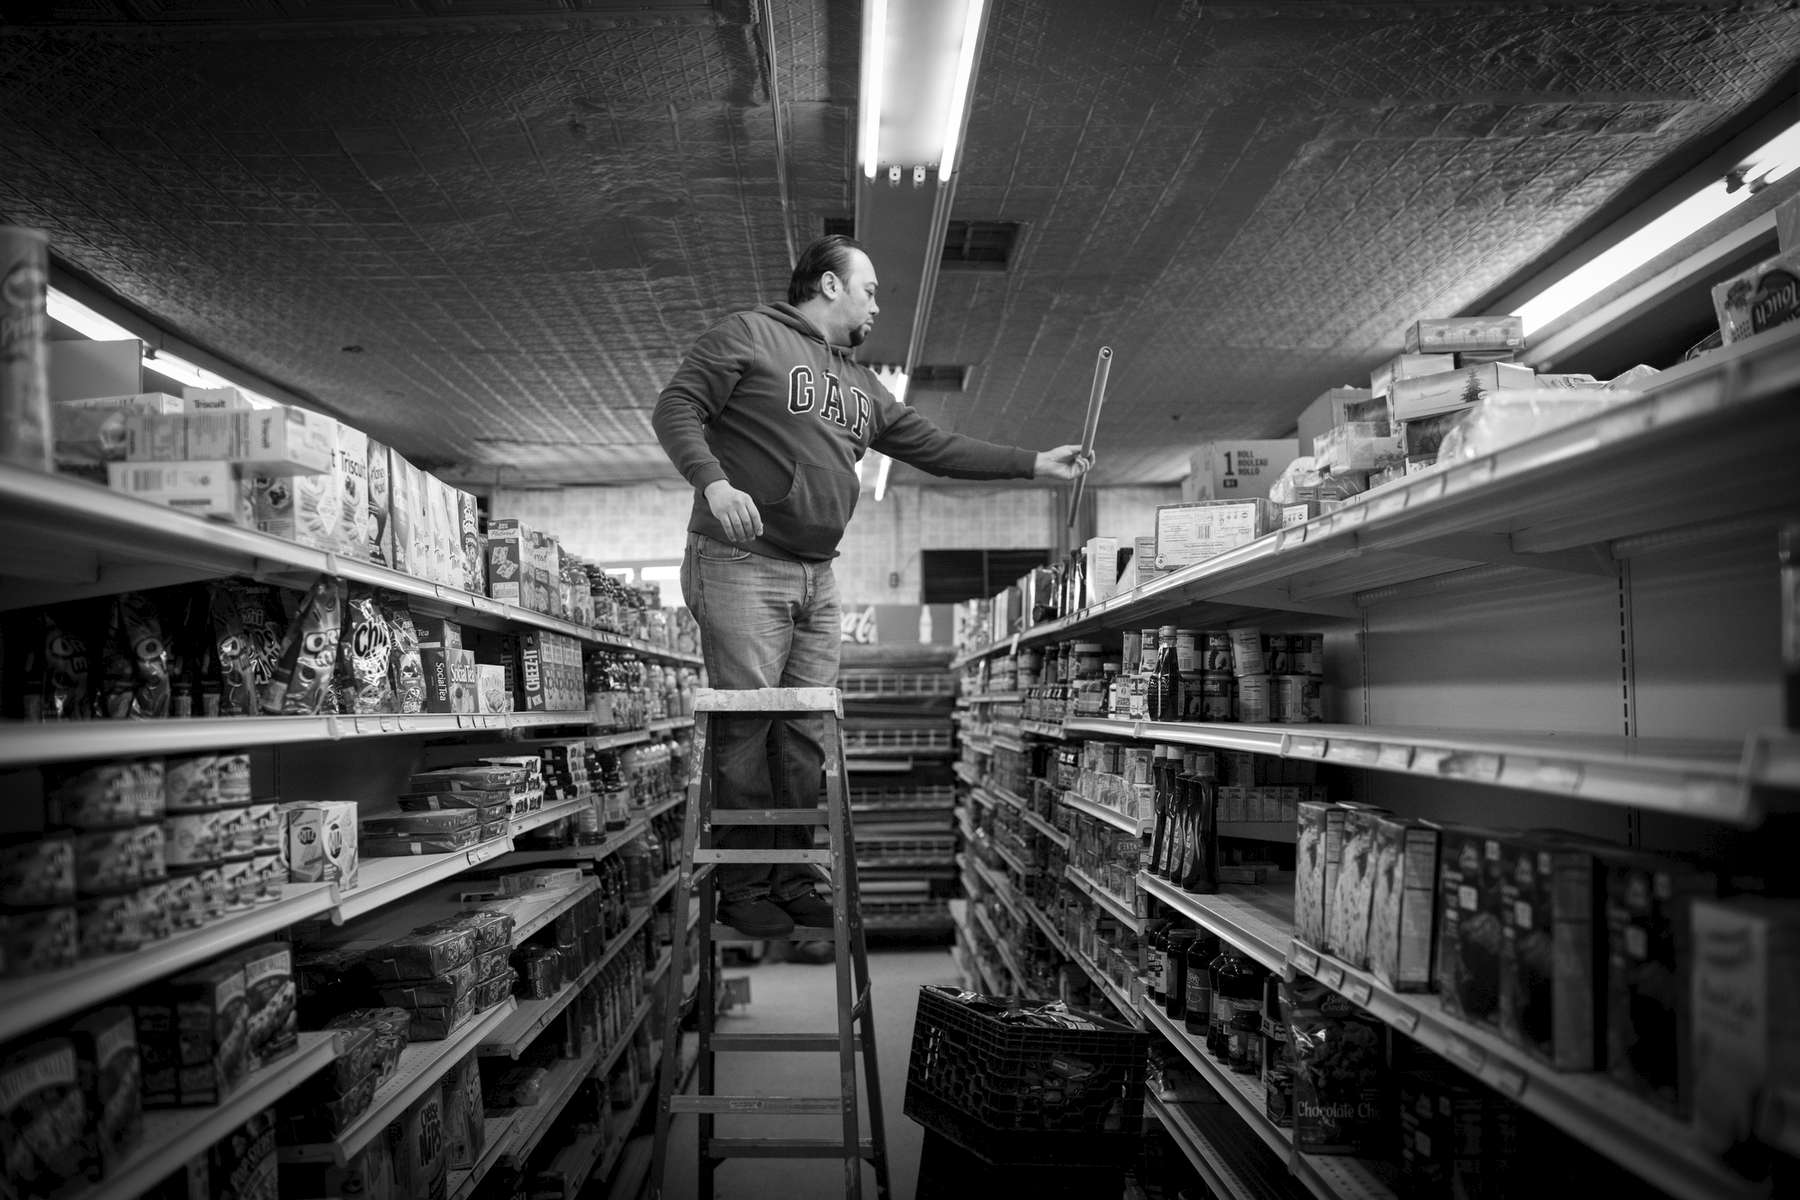 Abdullah Ferdous, who works as an electrician, changes a lighting fixture at a food market in Brooklyn. Michael Appleton/Mayoral Photography Office